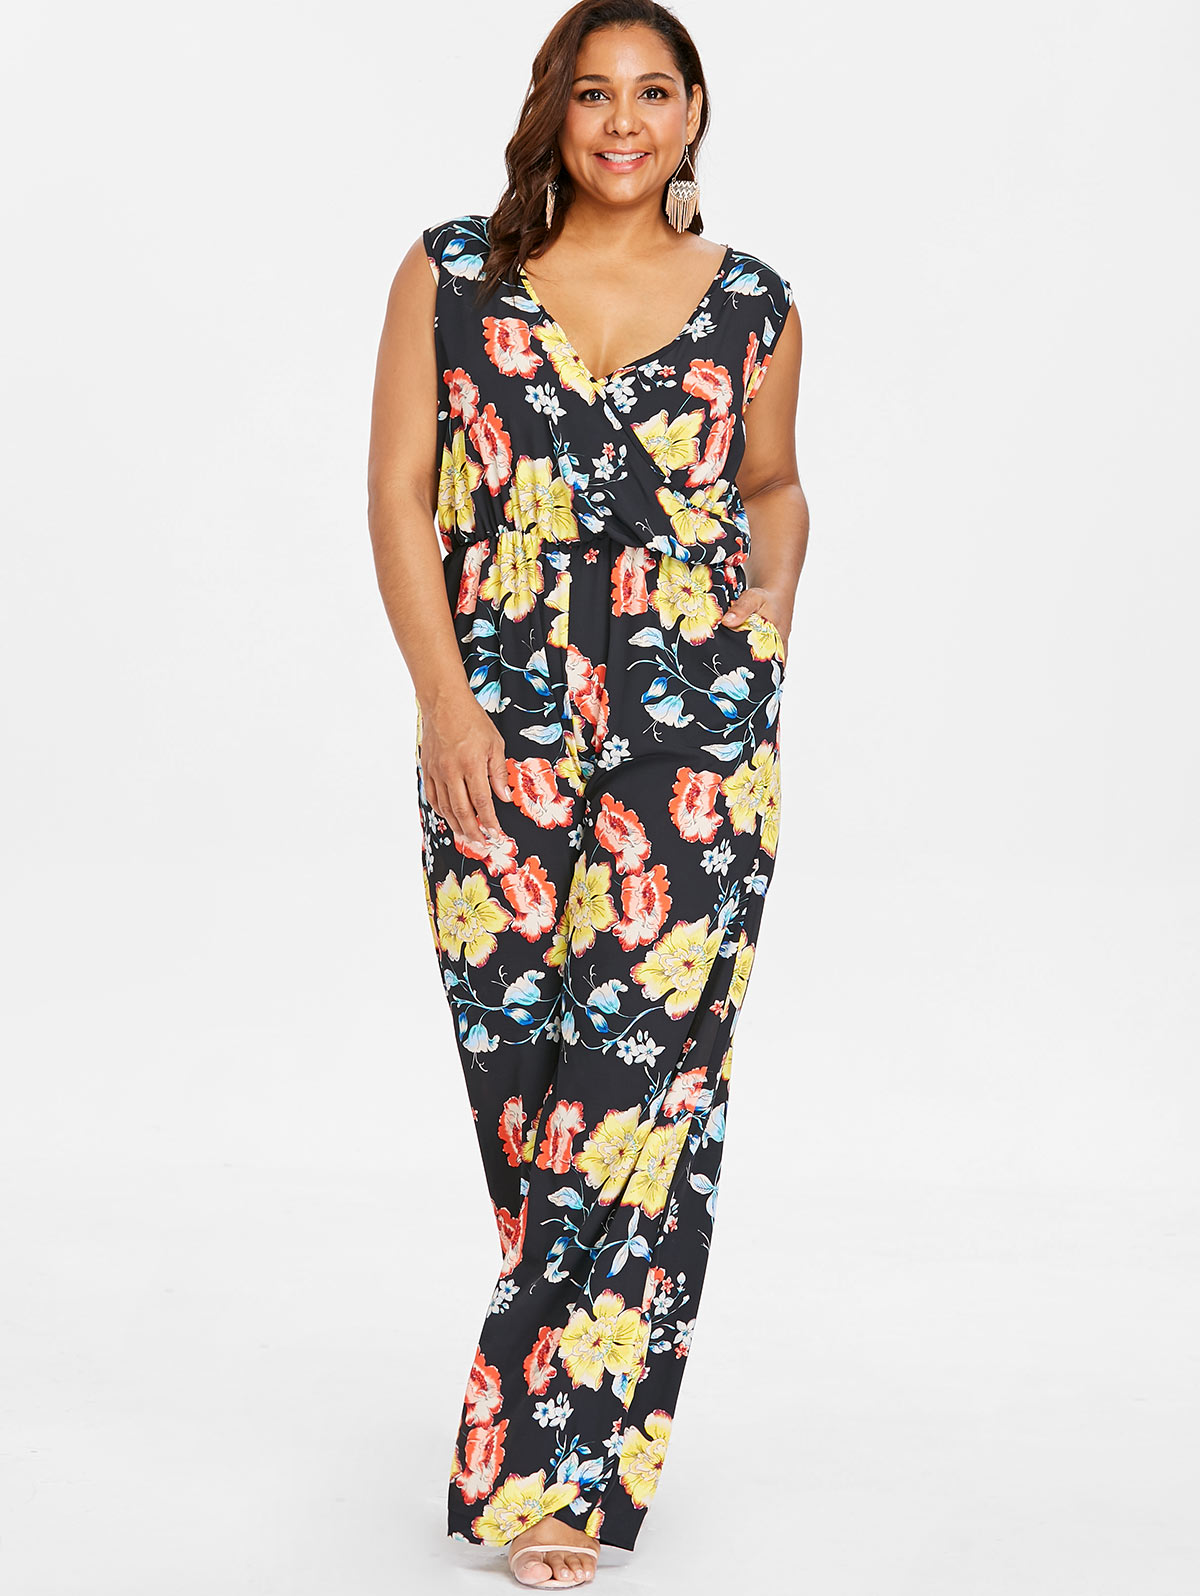 8424b79f1a7 Wipalo Plus Size Floral Floor Length Straight Pockets Palazzo Jumpsuit  Sleeveless Plunging Neck Wide Leg Surplice Jumpsuit 4XL-in Jumpsuits from  Women s ...